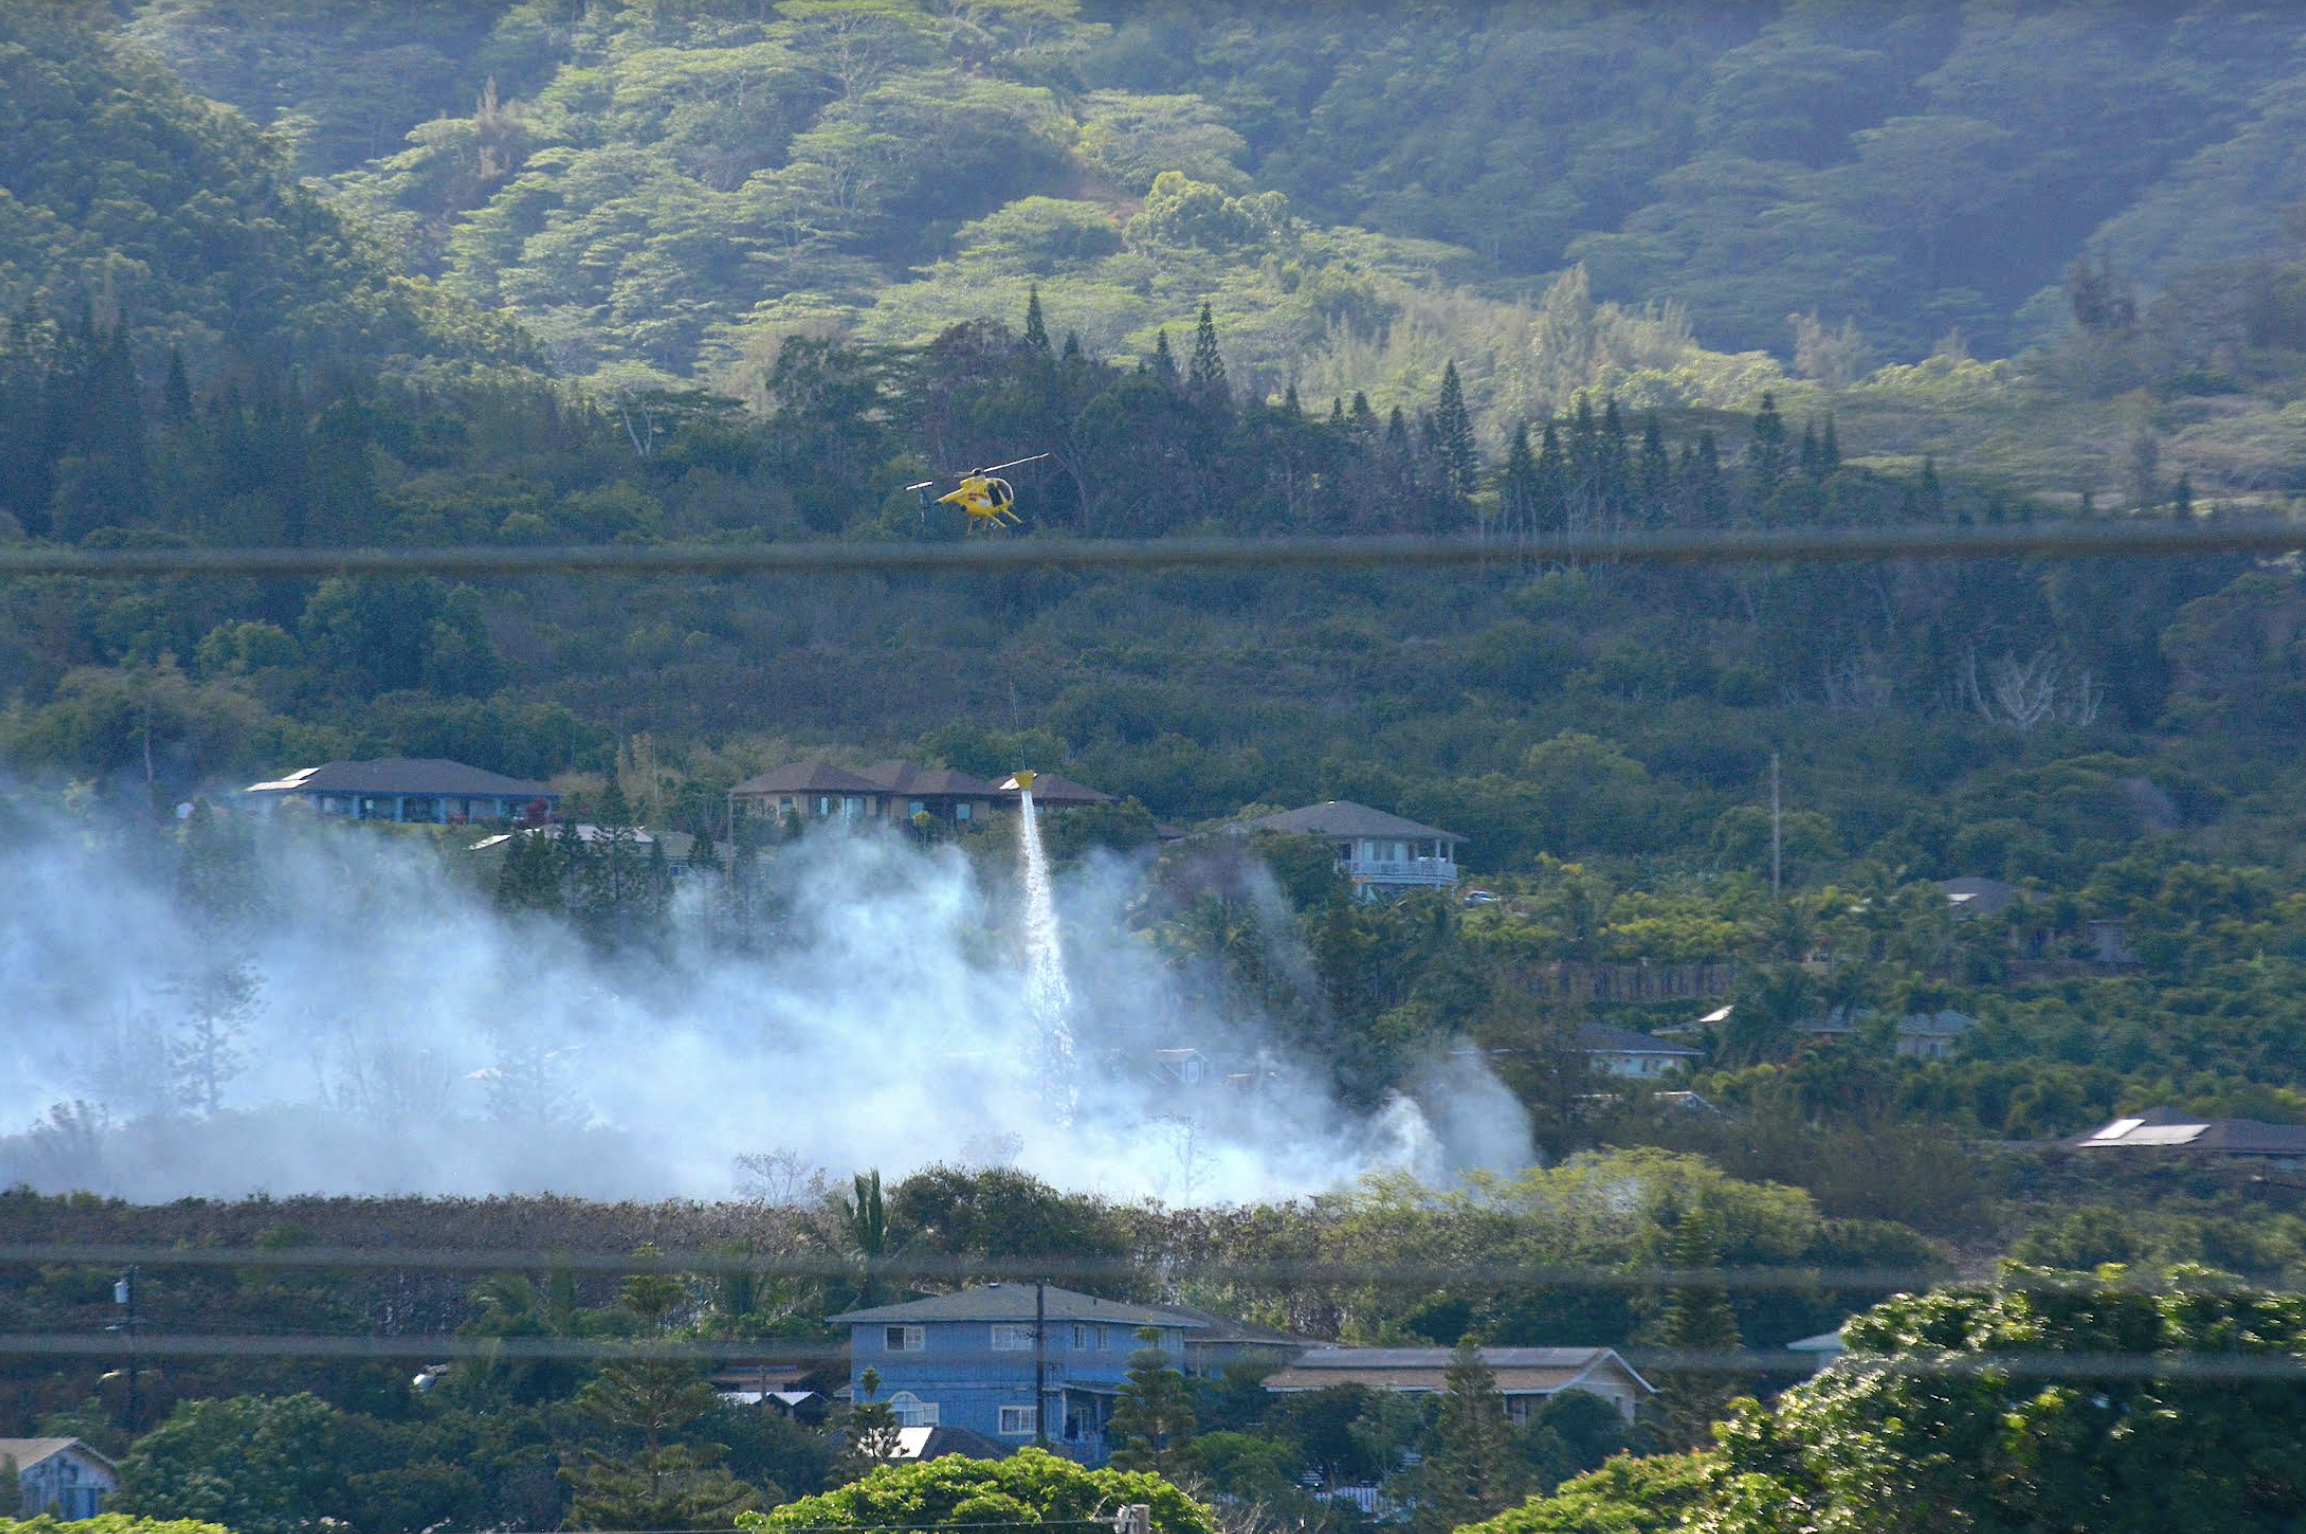 Wailuku Fire Burns 17 Acres, Now 100% Contained, Results in Piʻihana Evacuations